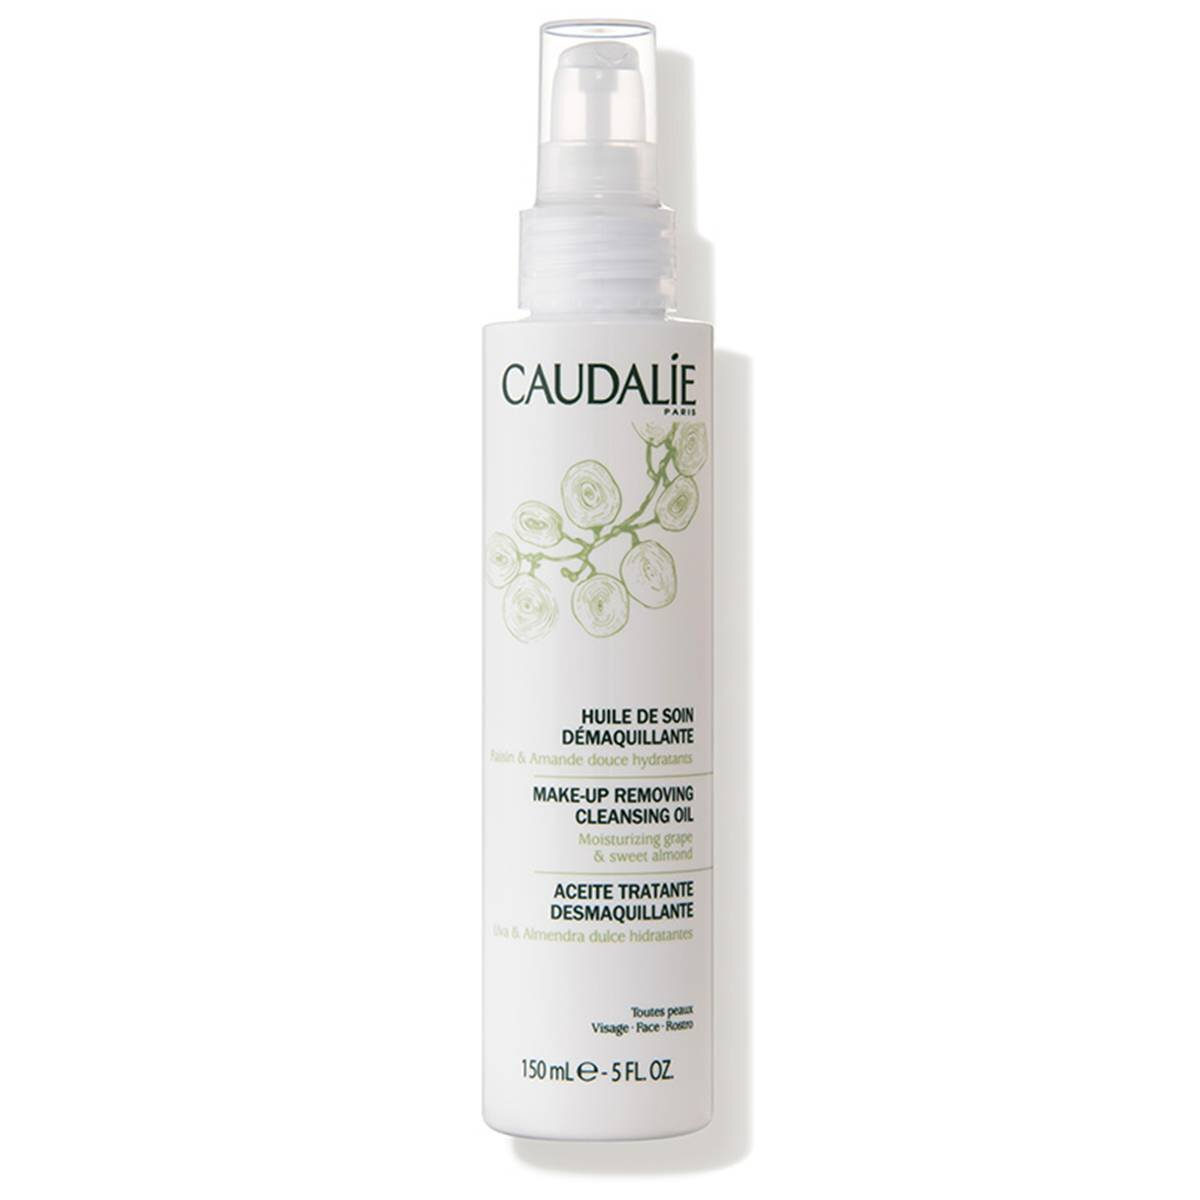 Caudalie  Make-Up Removing Cleansing Oil ($28)